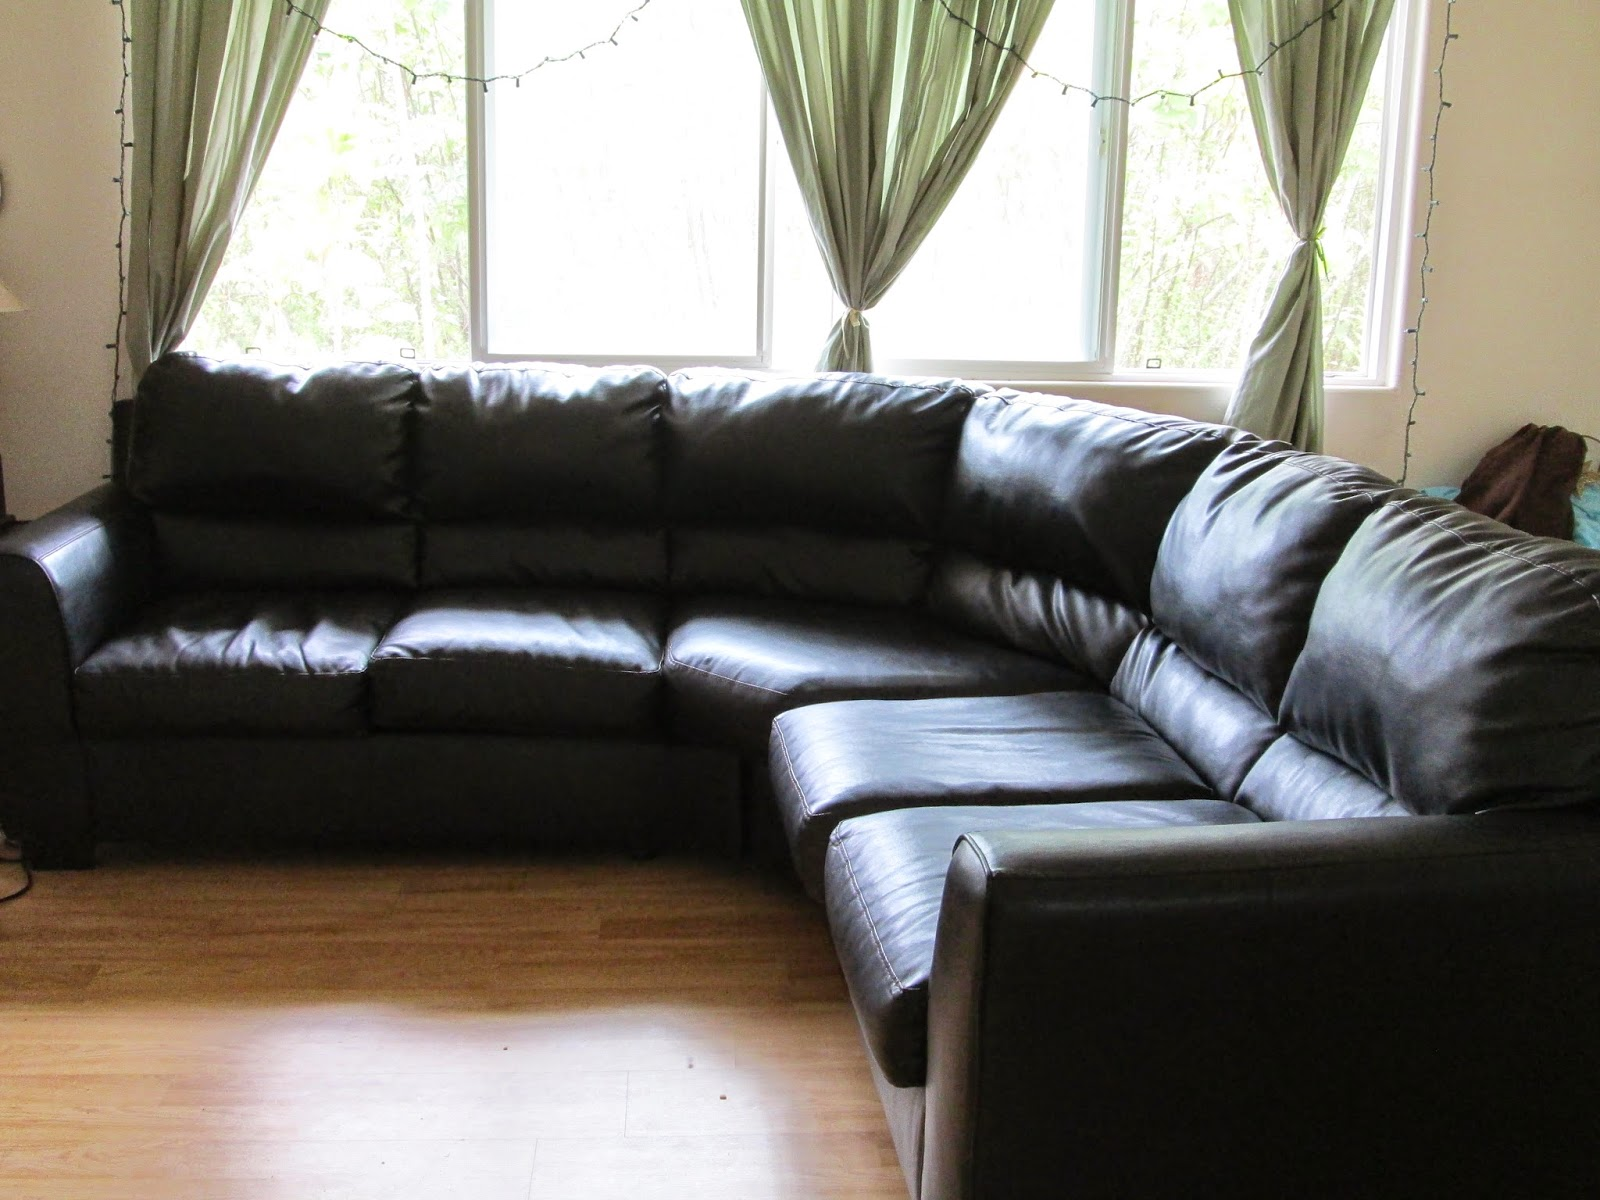 china furniture in of world couch sofa most expensive set market watch